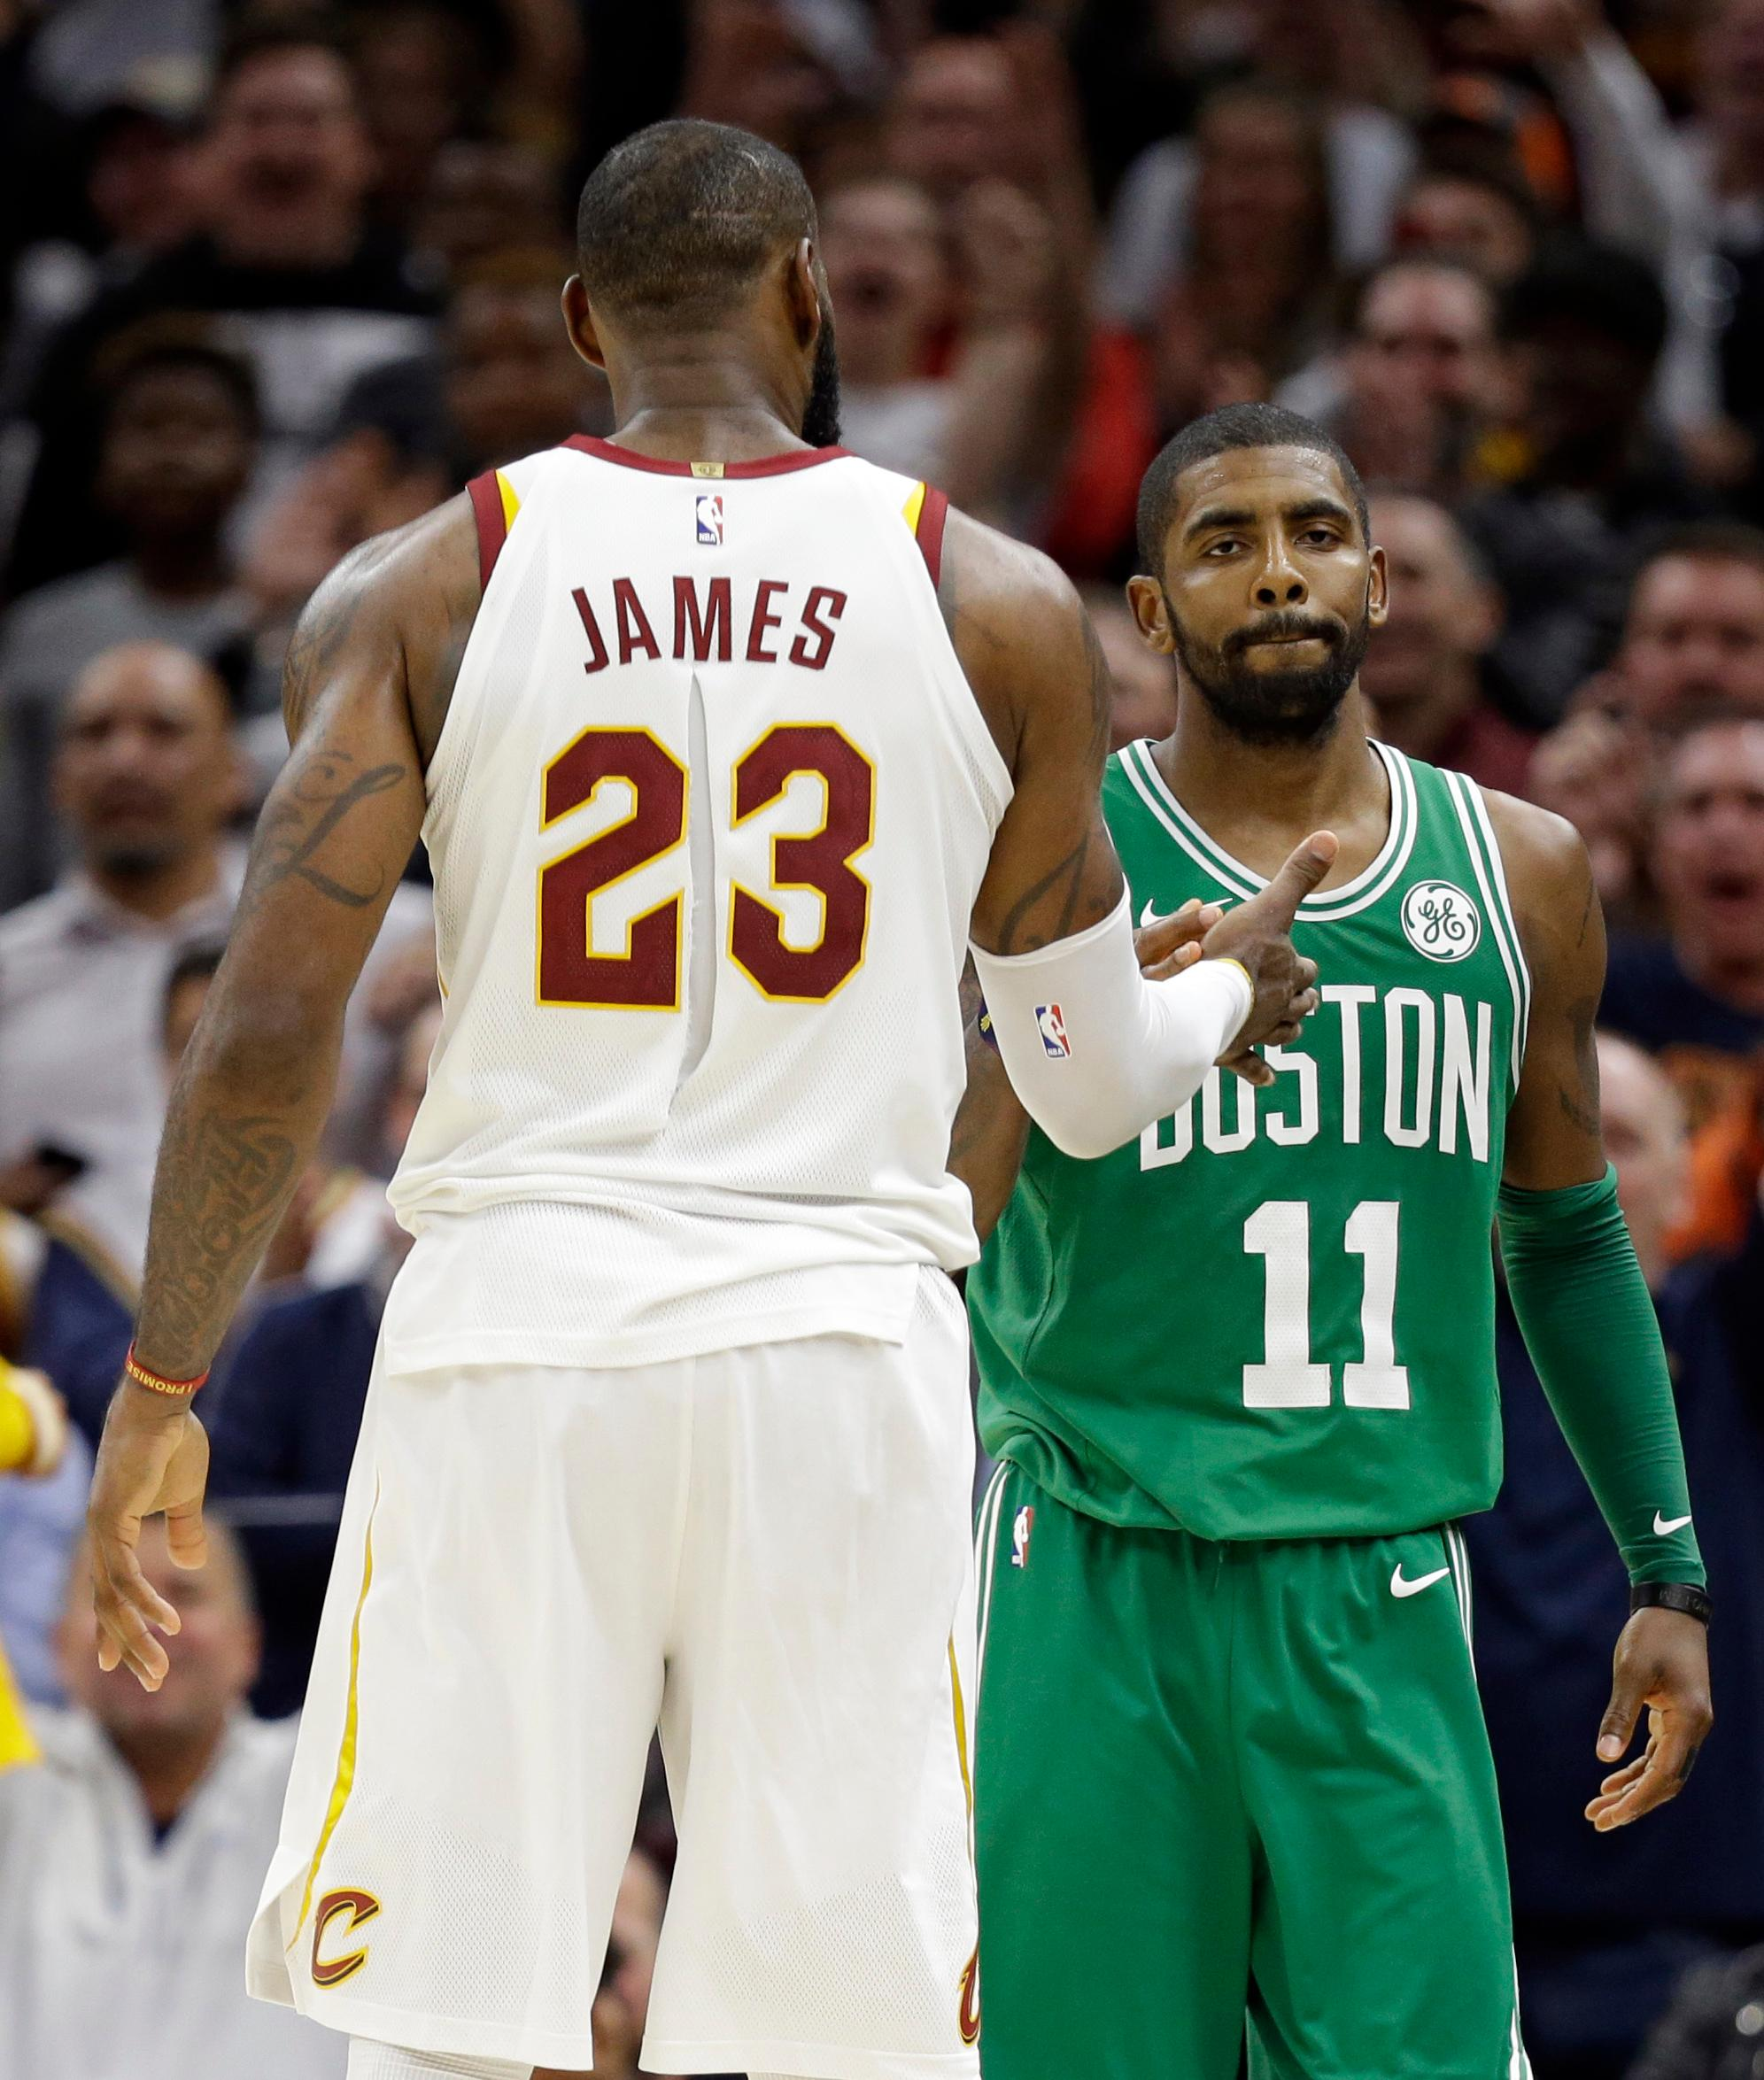 Cleveland Cavaliers' LeBron James and Boston Celtics' Kyrie Irving, right, shake hands after the Cavaliers defeated the Celtics in the second half of an NBA basketball game, Tuesday, Oct. 17, 2017, in Cleveland. The Cavaliers won 102-99. (AP Photo/Tony Dejak)